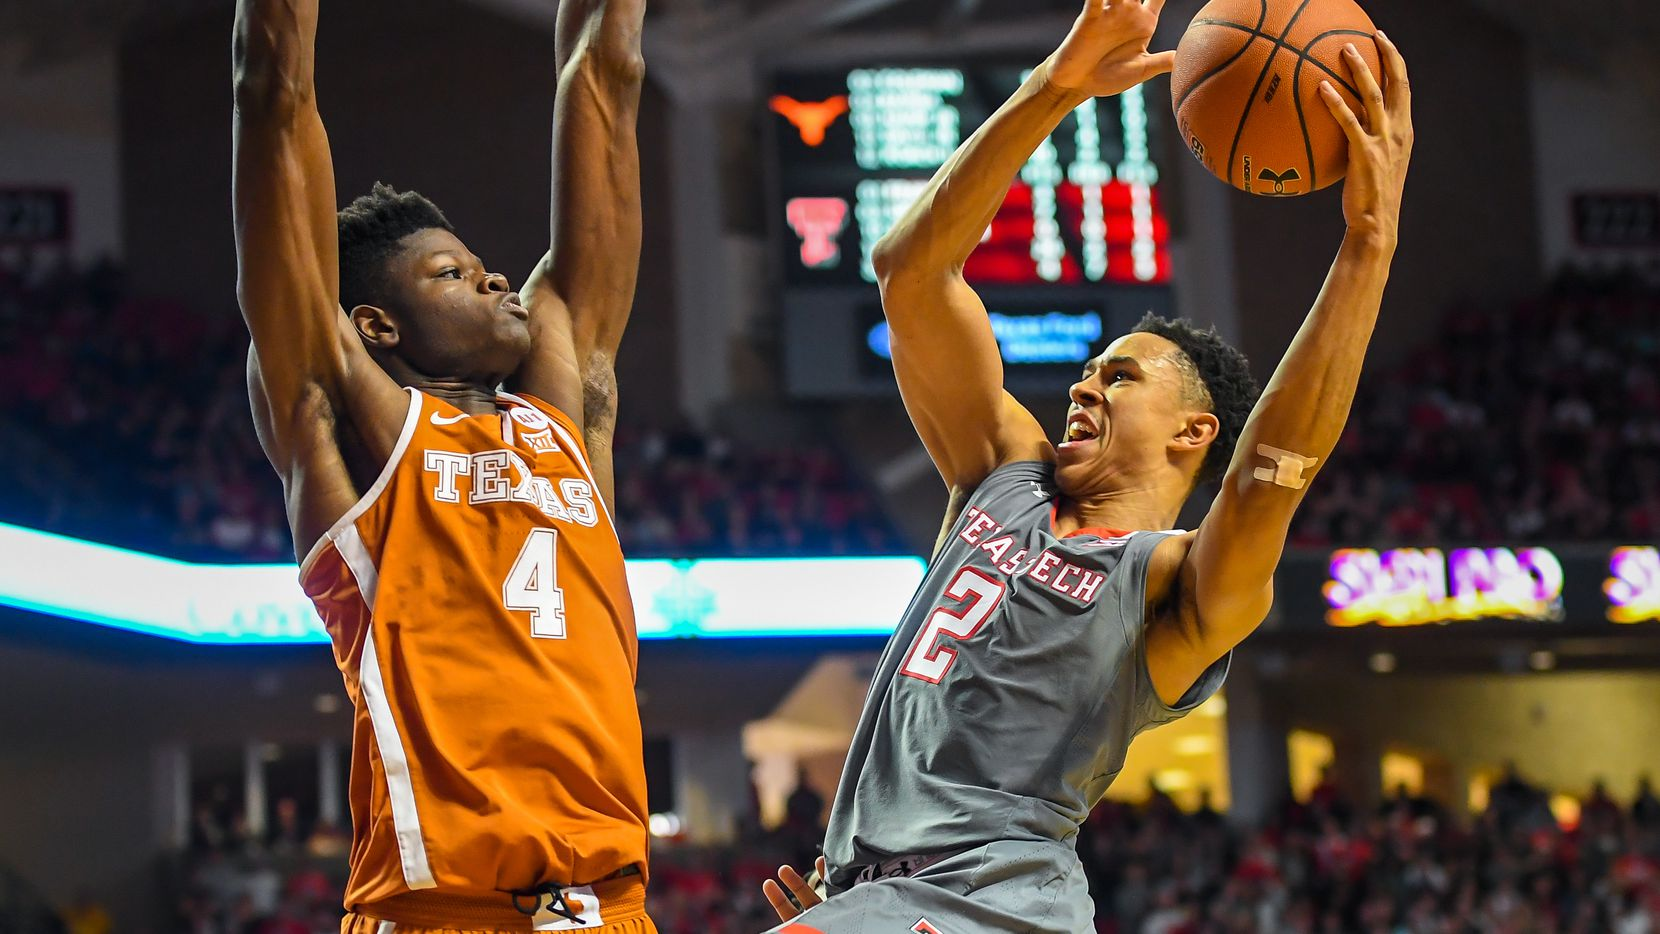 LUBBOCK, TX - JANUARY 31: Zhaire Smith #2 of the Texas Tech Red Raiders goes up for a shot against Nohamed Bamba #4 of the Texas Longhorns during the game on January 31, 2018 at United Supermarket Arena in Lubbock, Texas. Texas Tech defeated Texas 73-71 in overtime. (Photo by John Weast/Getty Images)